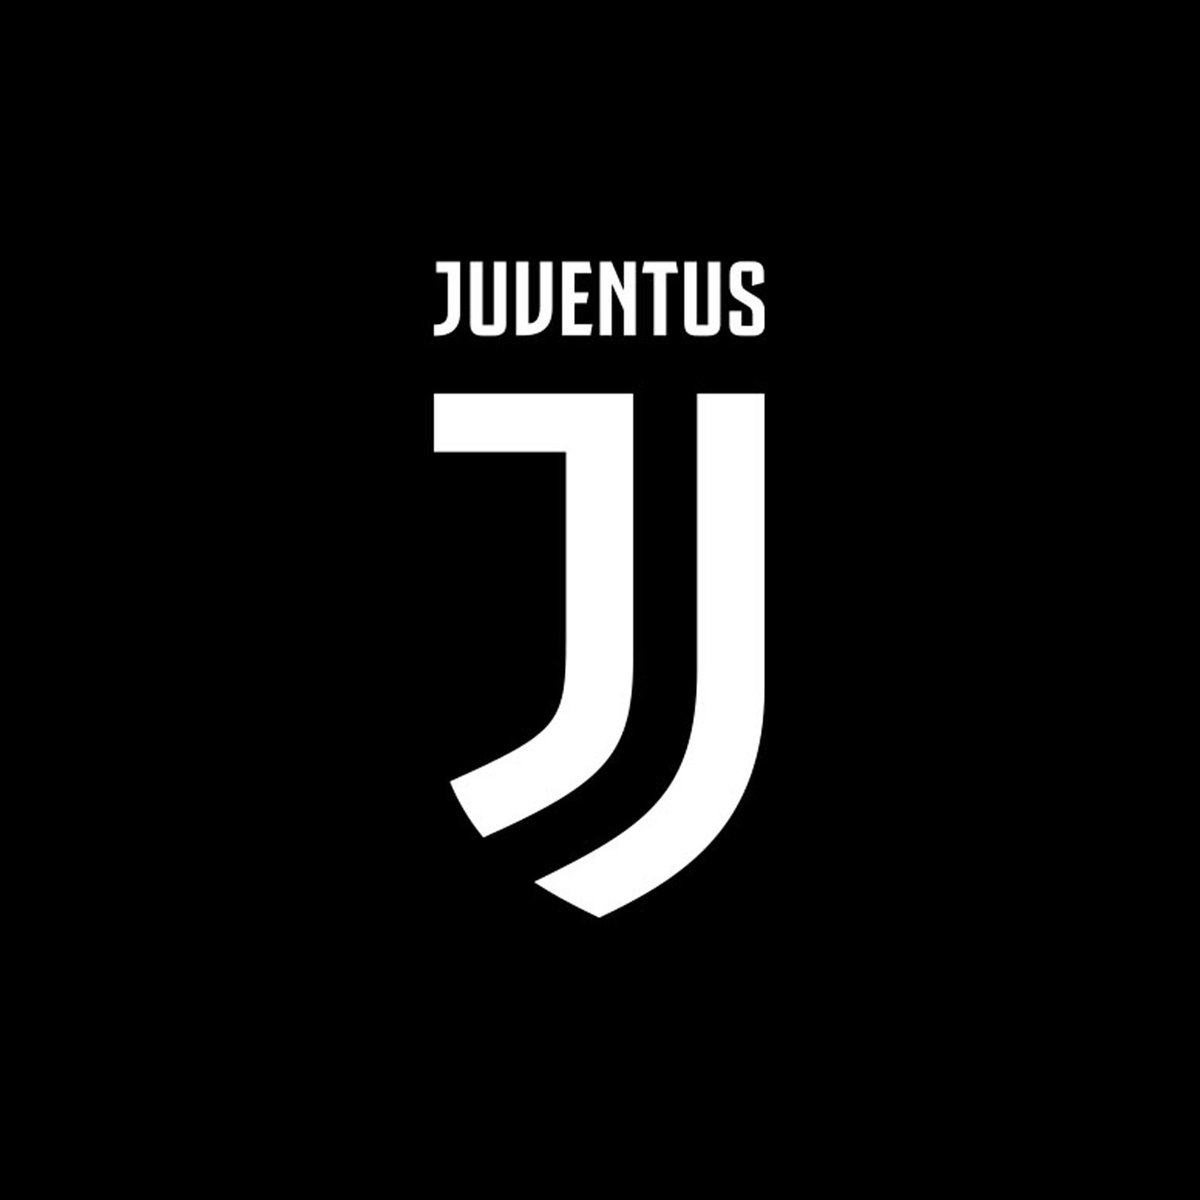 Juventus FC faces fan uprising after launching minimal new logo: https://t.co/QudZSVWz4k